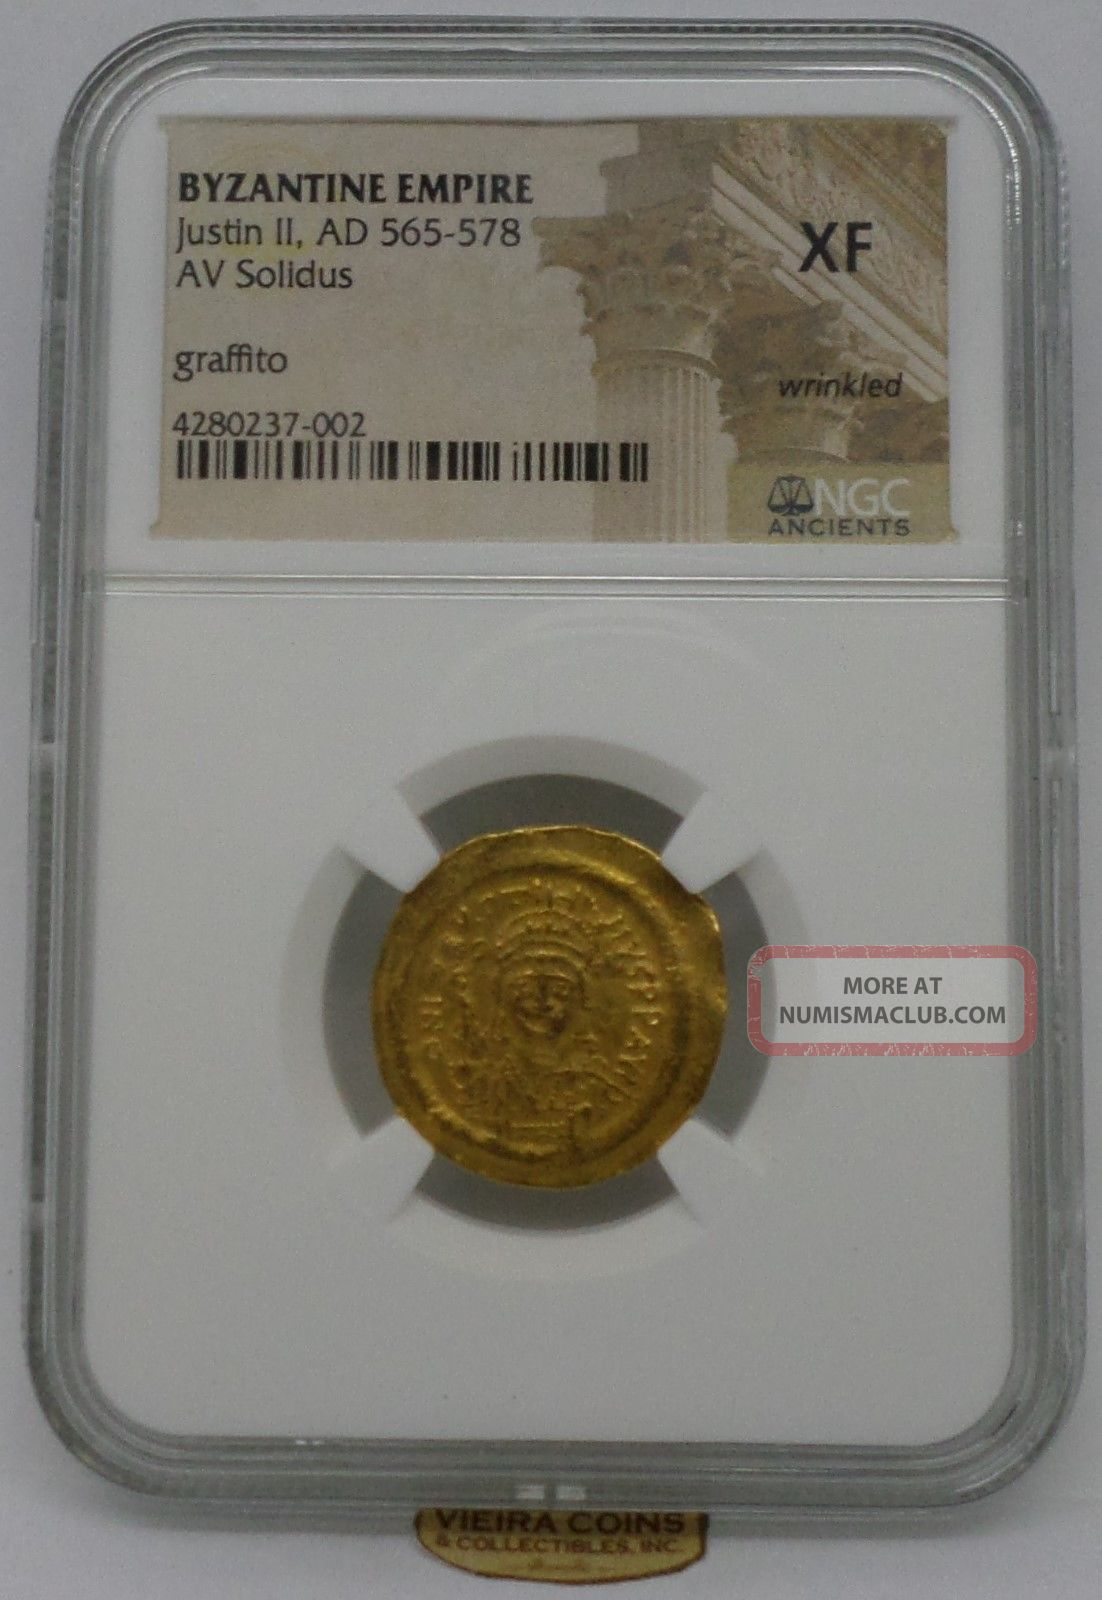 Ad 565 - 578 Byzantine Empire Gold Justin Ii,  Av Solidus,  Ngc Xf Wrinkled - B947 Coins: Ancient photo